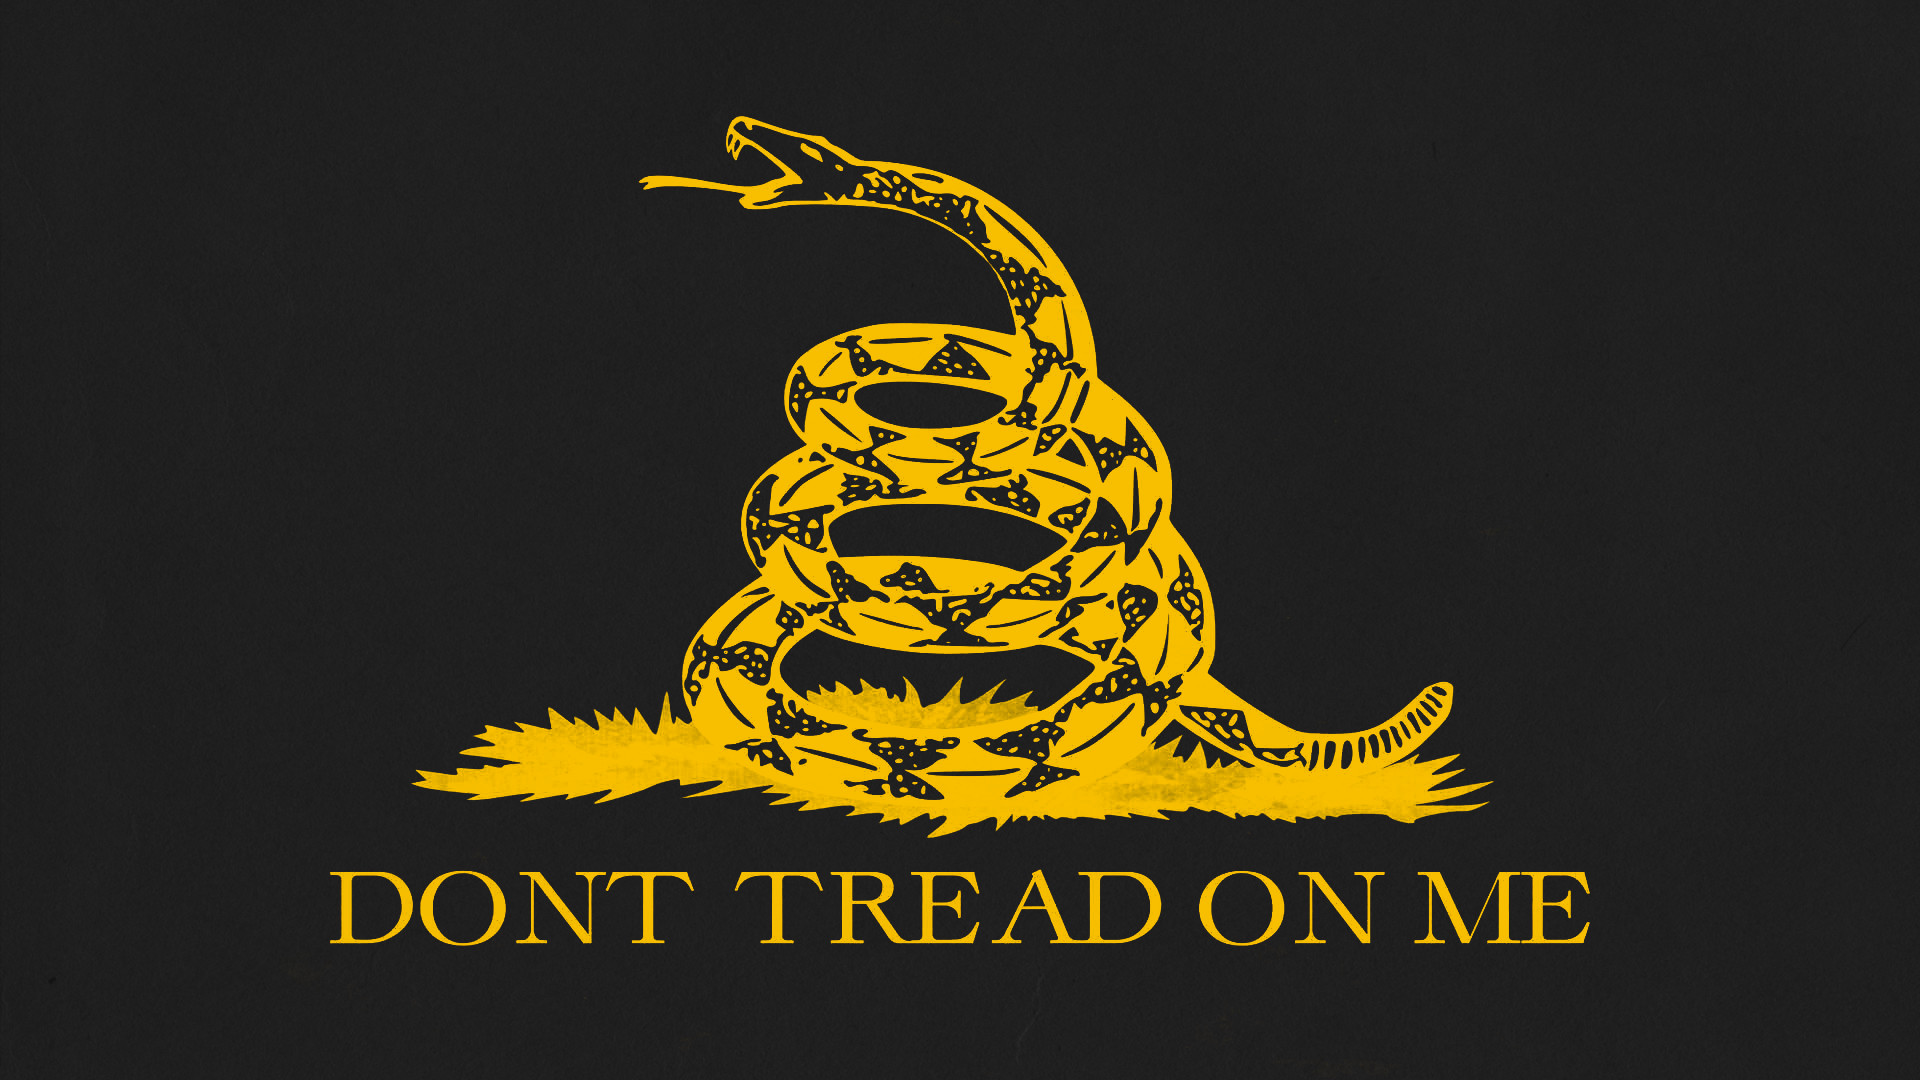 Dont Tread on Me Wallpaper (74+ images)